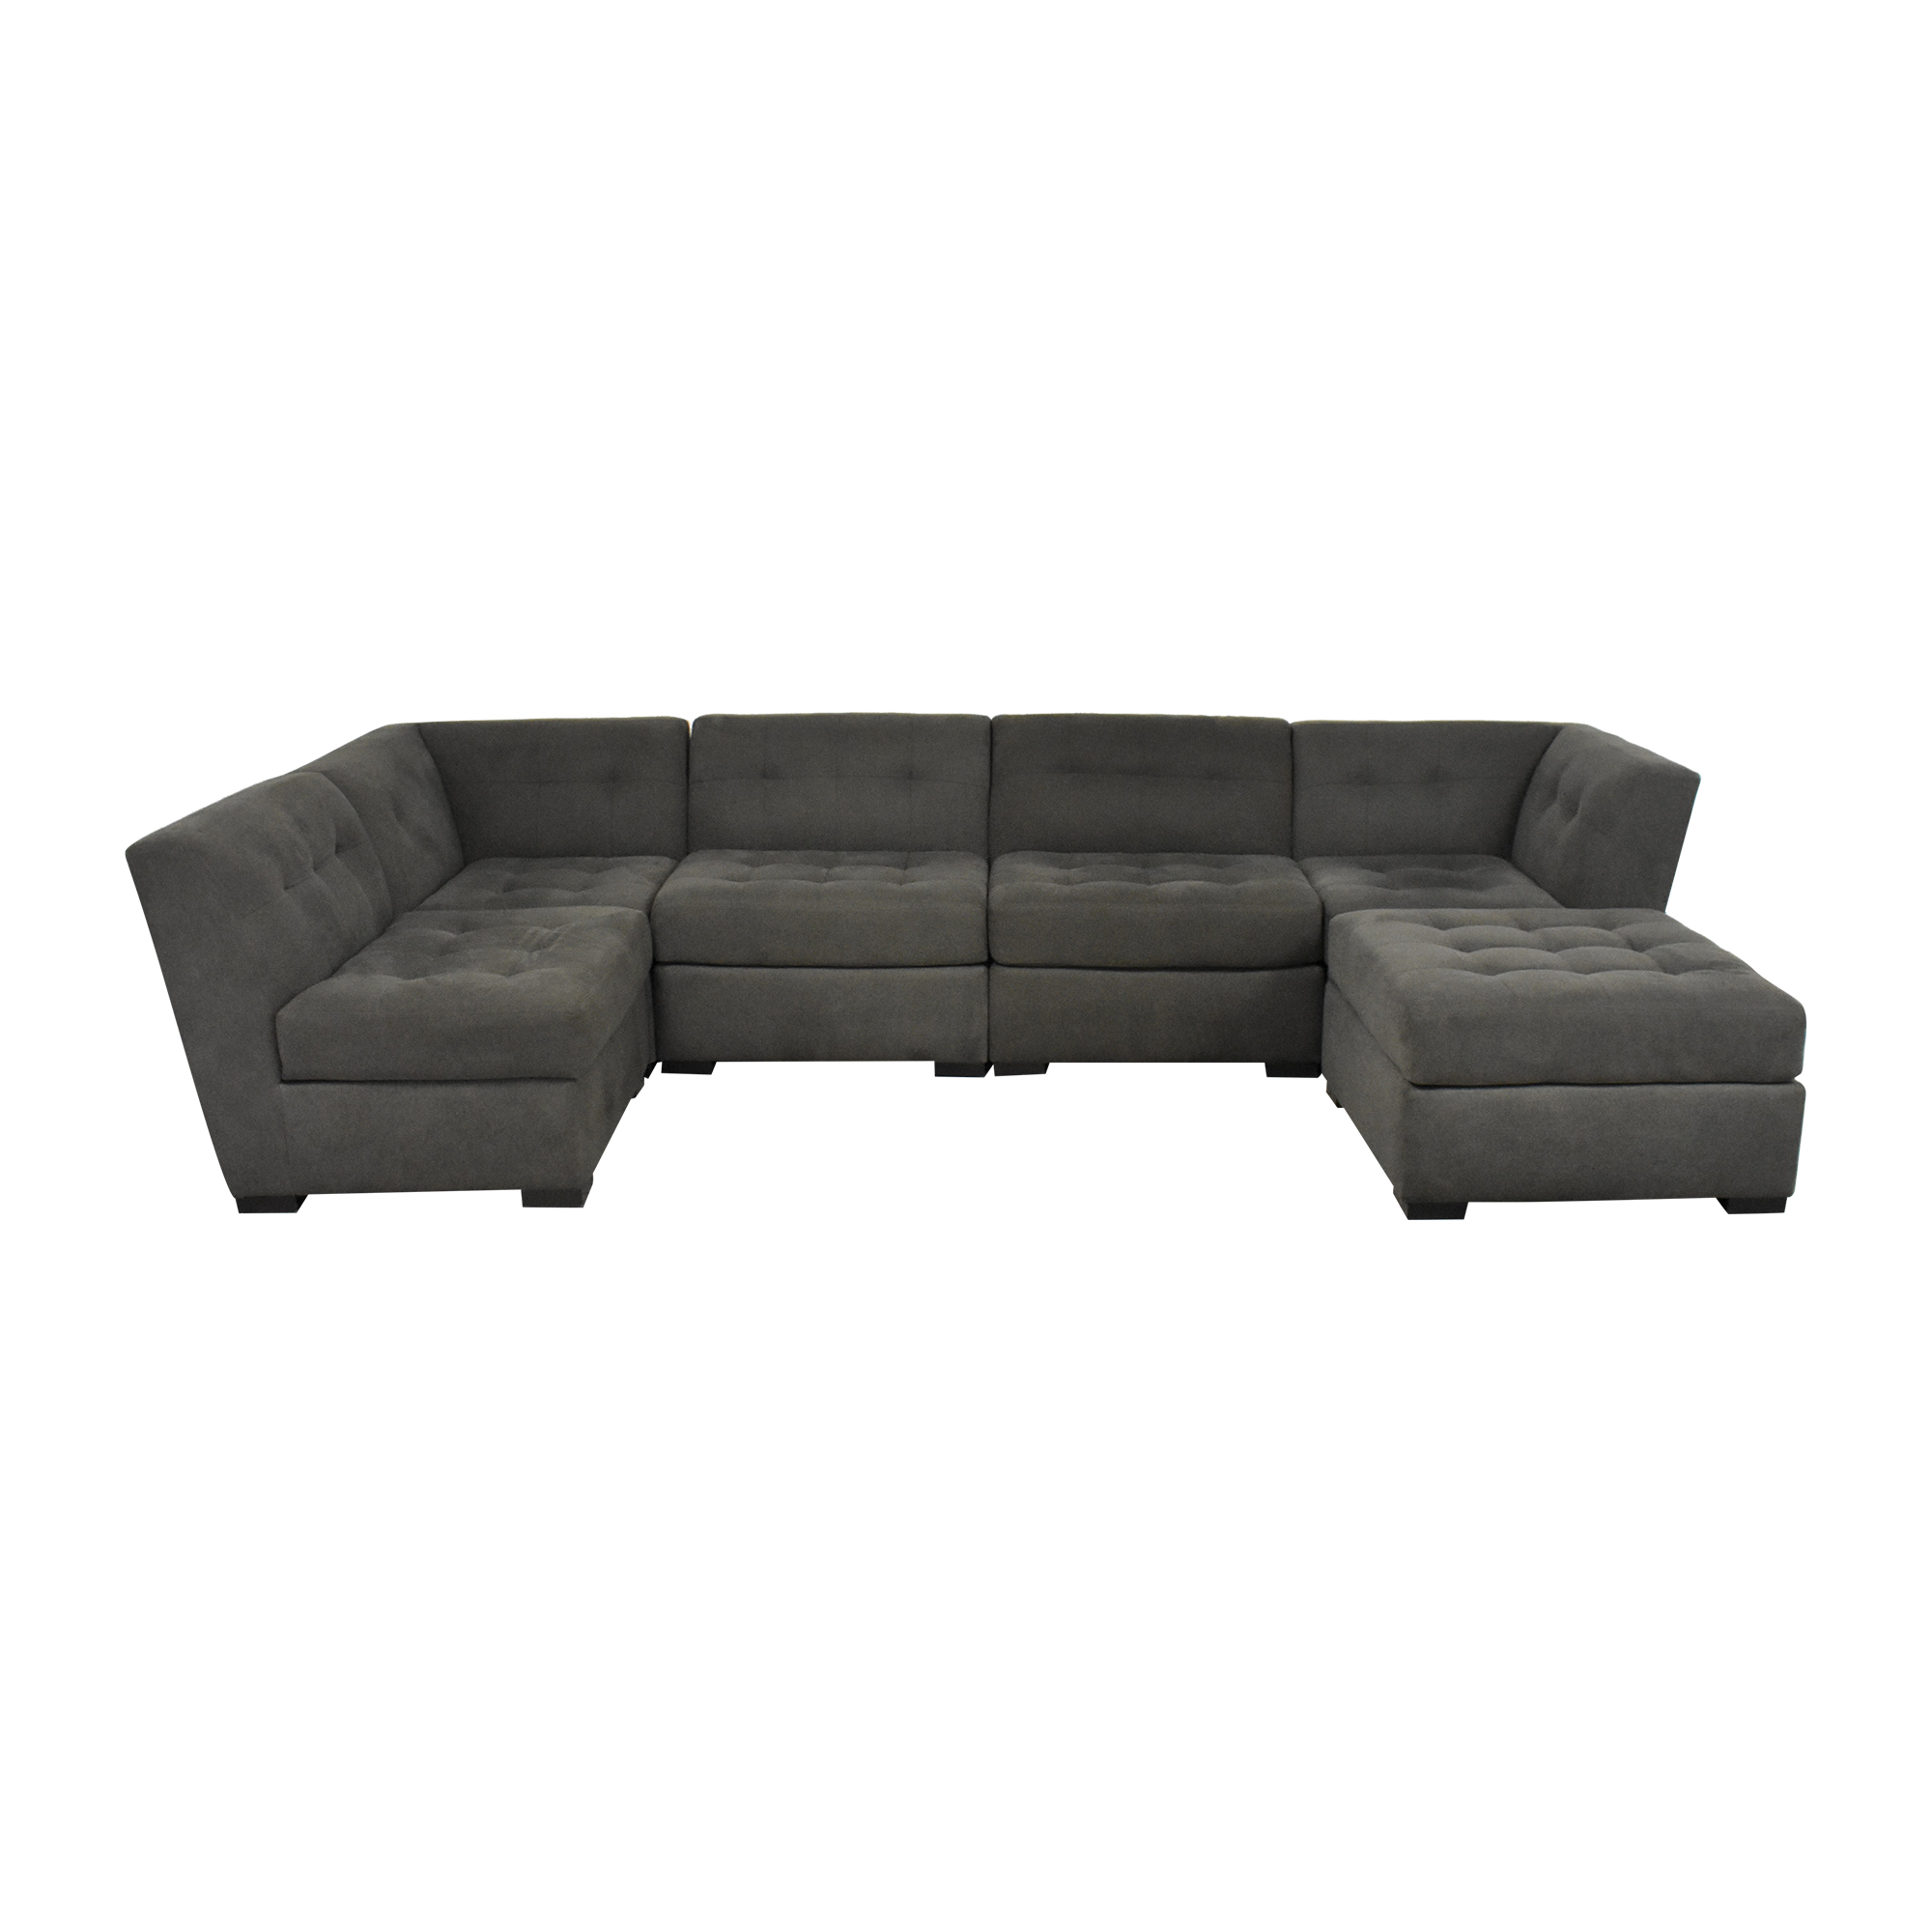 buy Macy's Macy's Tufted Sectional Sofa and Ottoman online